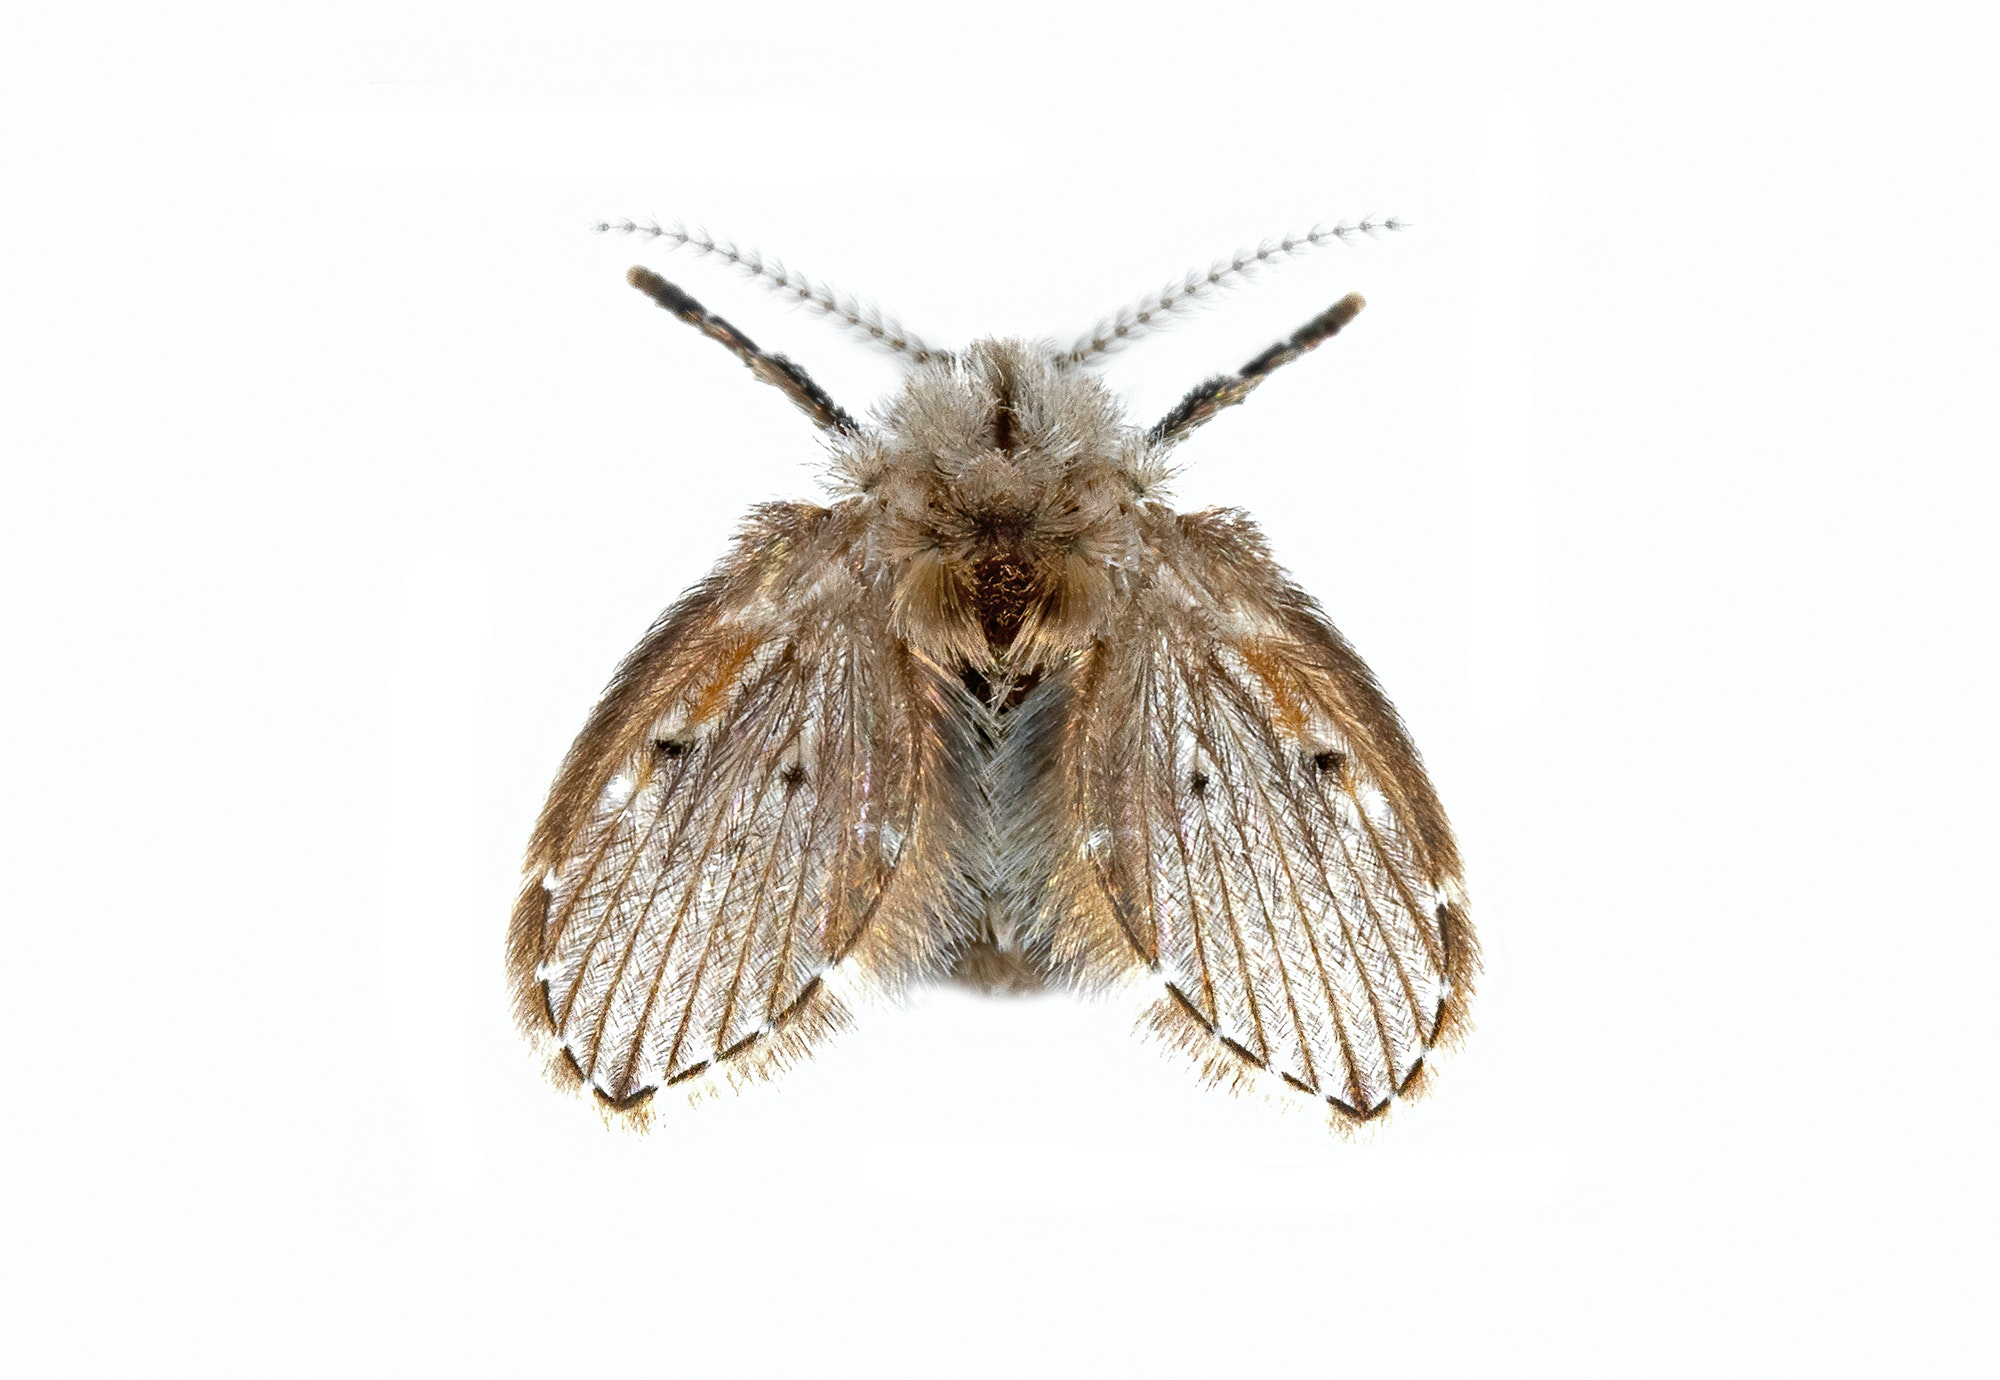 A winged insect viewed from above. Two front legs and two antennae can be seen.  The head and body appear fuzzy.  The wings are striped.  The insect is mostly light brown colored.